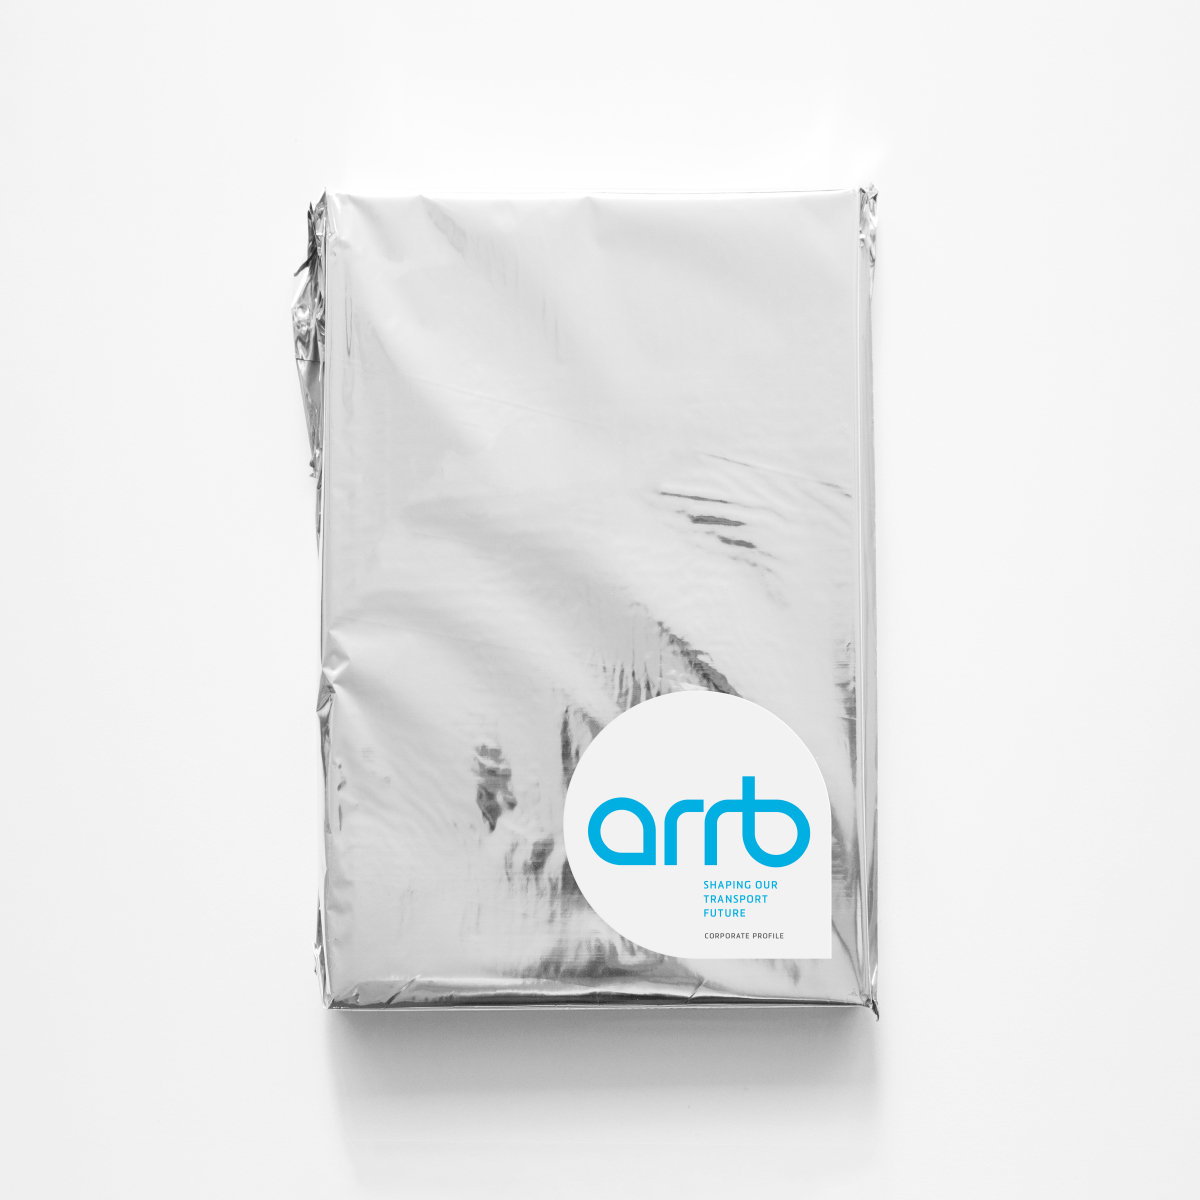 ARRB Brand Identity Brochure Foil Package Design